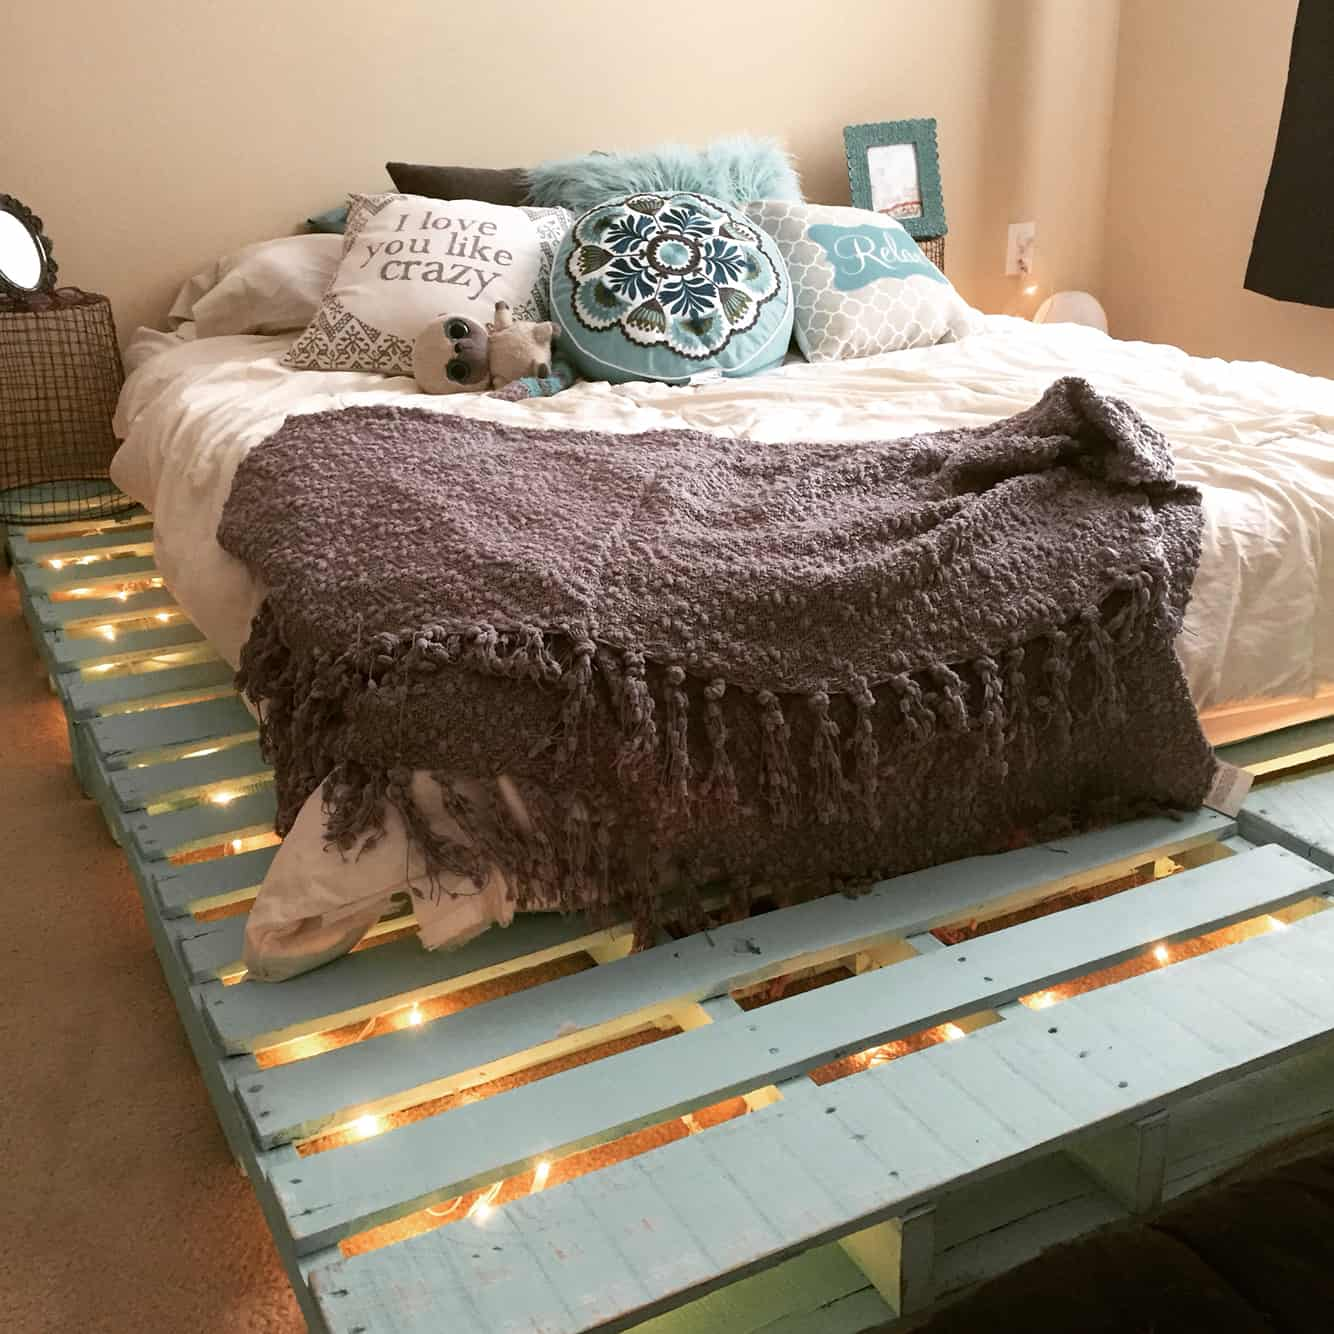 7. DELICATE PASTEL TURQUOISE PALLET BED FRAME LIT BY STRING LIGHTS